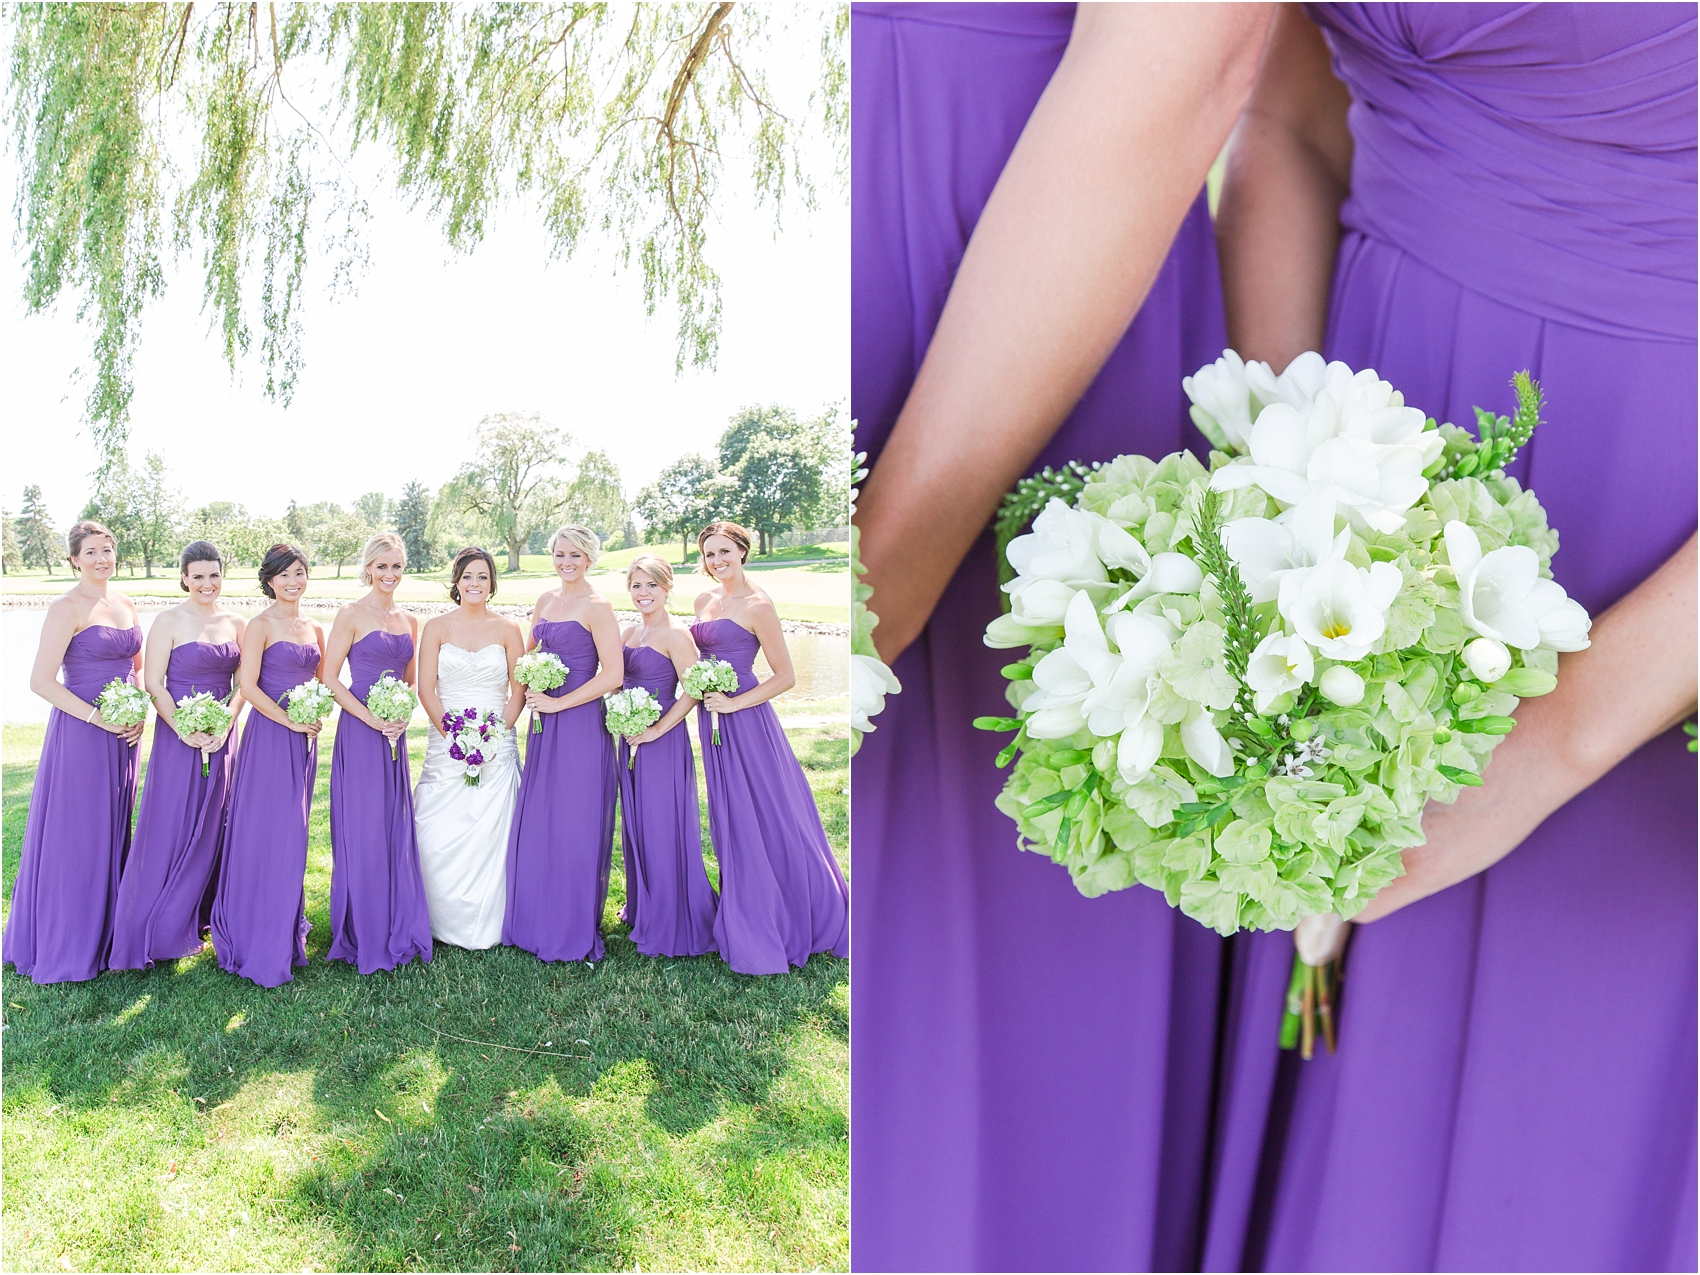 classic-wedding-photos-at-great-oaks-country-club-in-rochester-hills-mi-by-courtney-carolyn-photography_0060.jpg